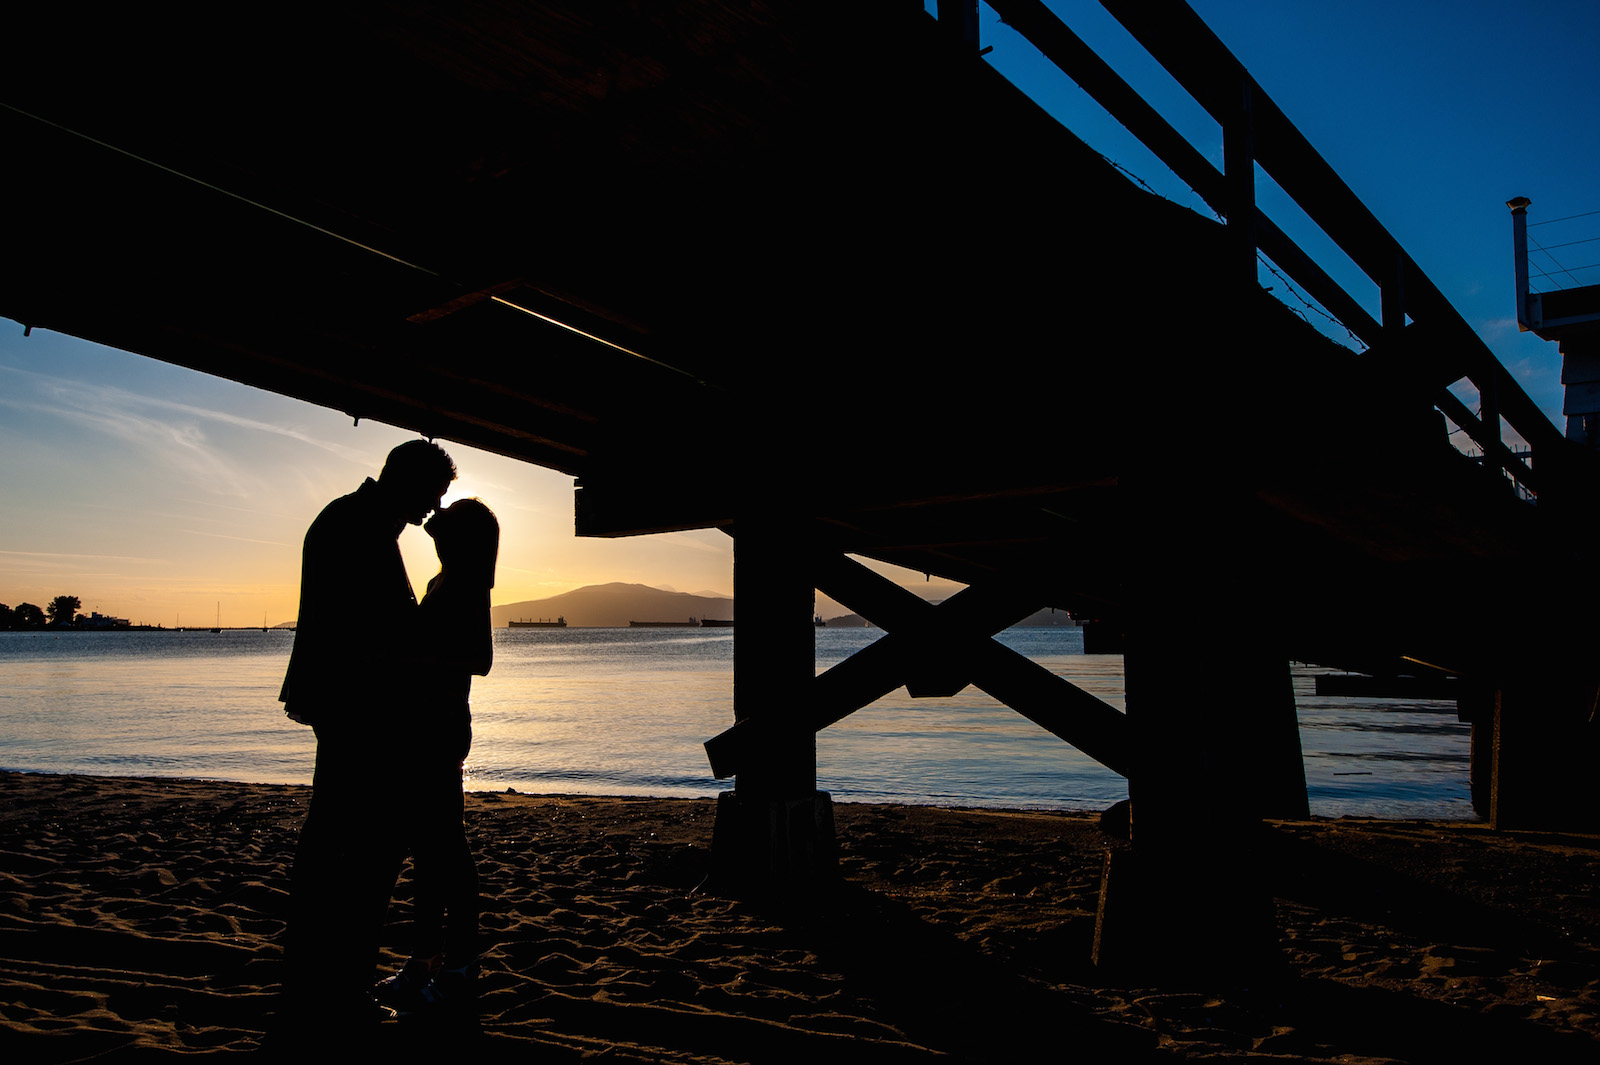 victoria-wedding-photographers-jericho-beach-sunset-engageement-10.jpg